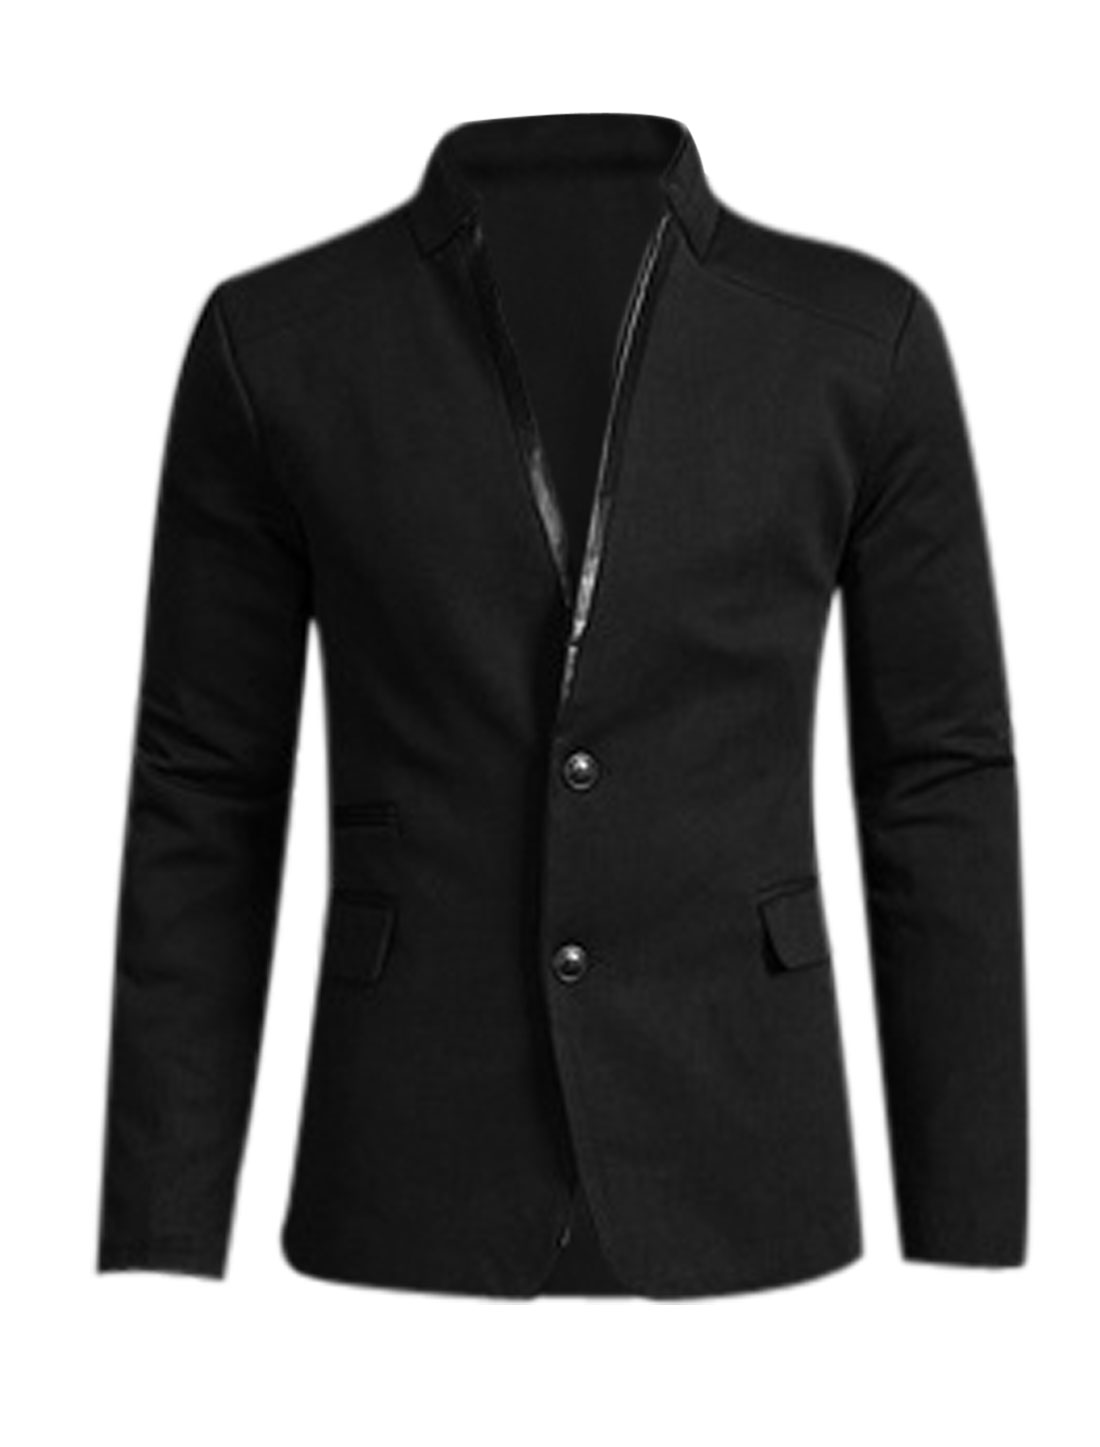 Men Black Single Breasted Front Pockets Split Back Blazer Jacket M